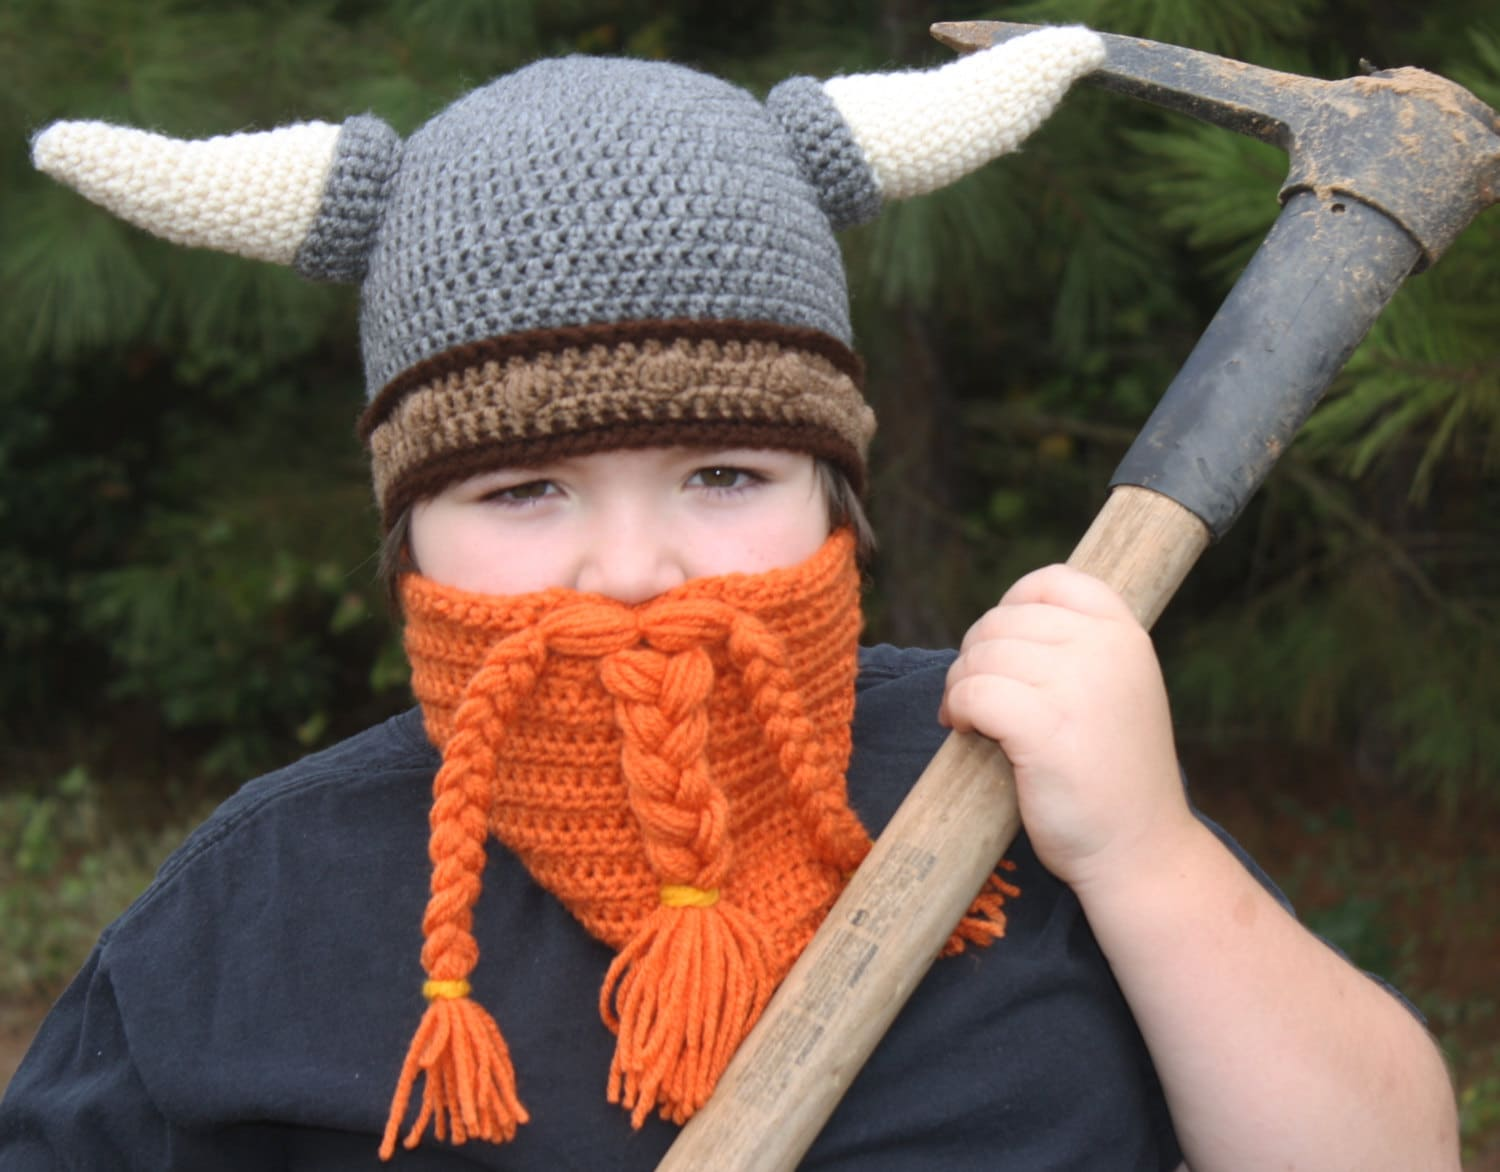 Crochet Viking Hat With Beard : Crochet Viking Helmet Hat with Beard / Viking by ThePeasantsHeir